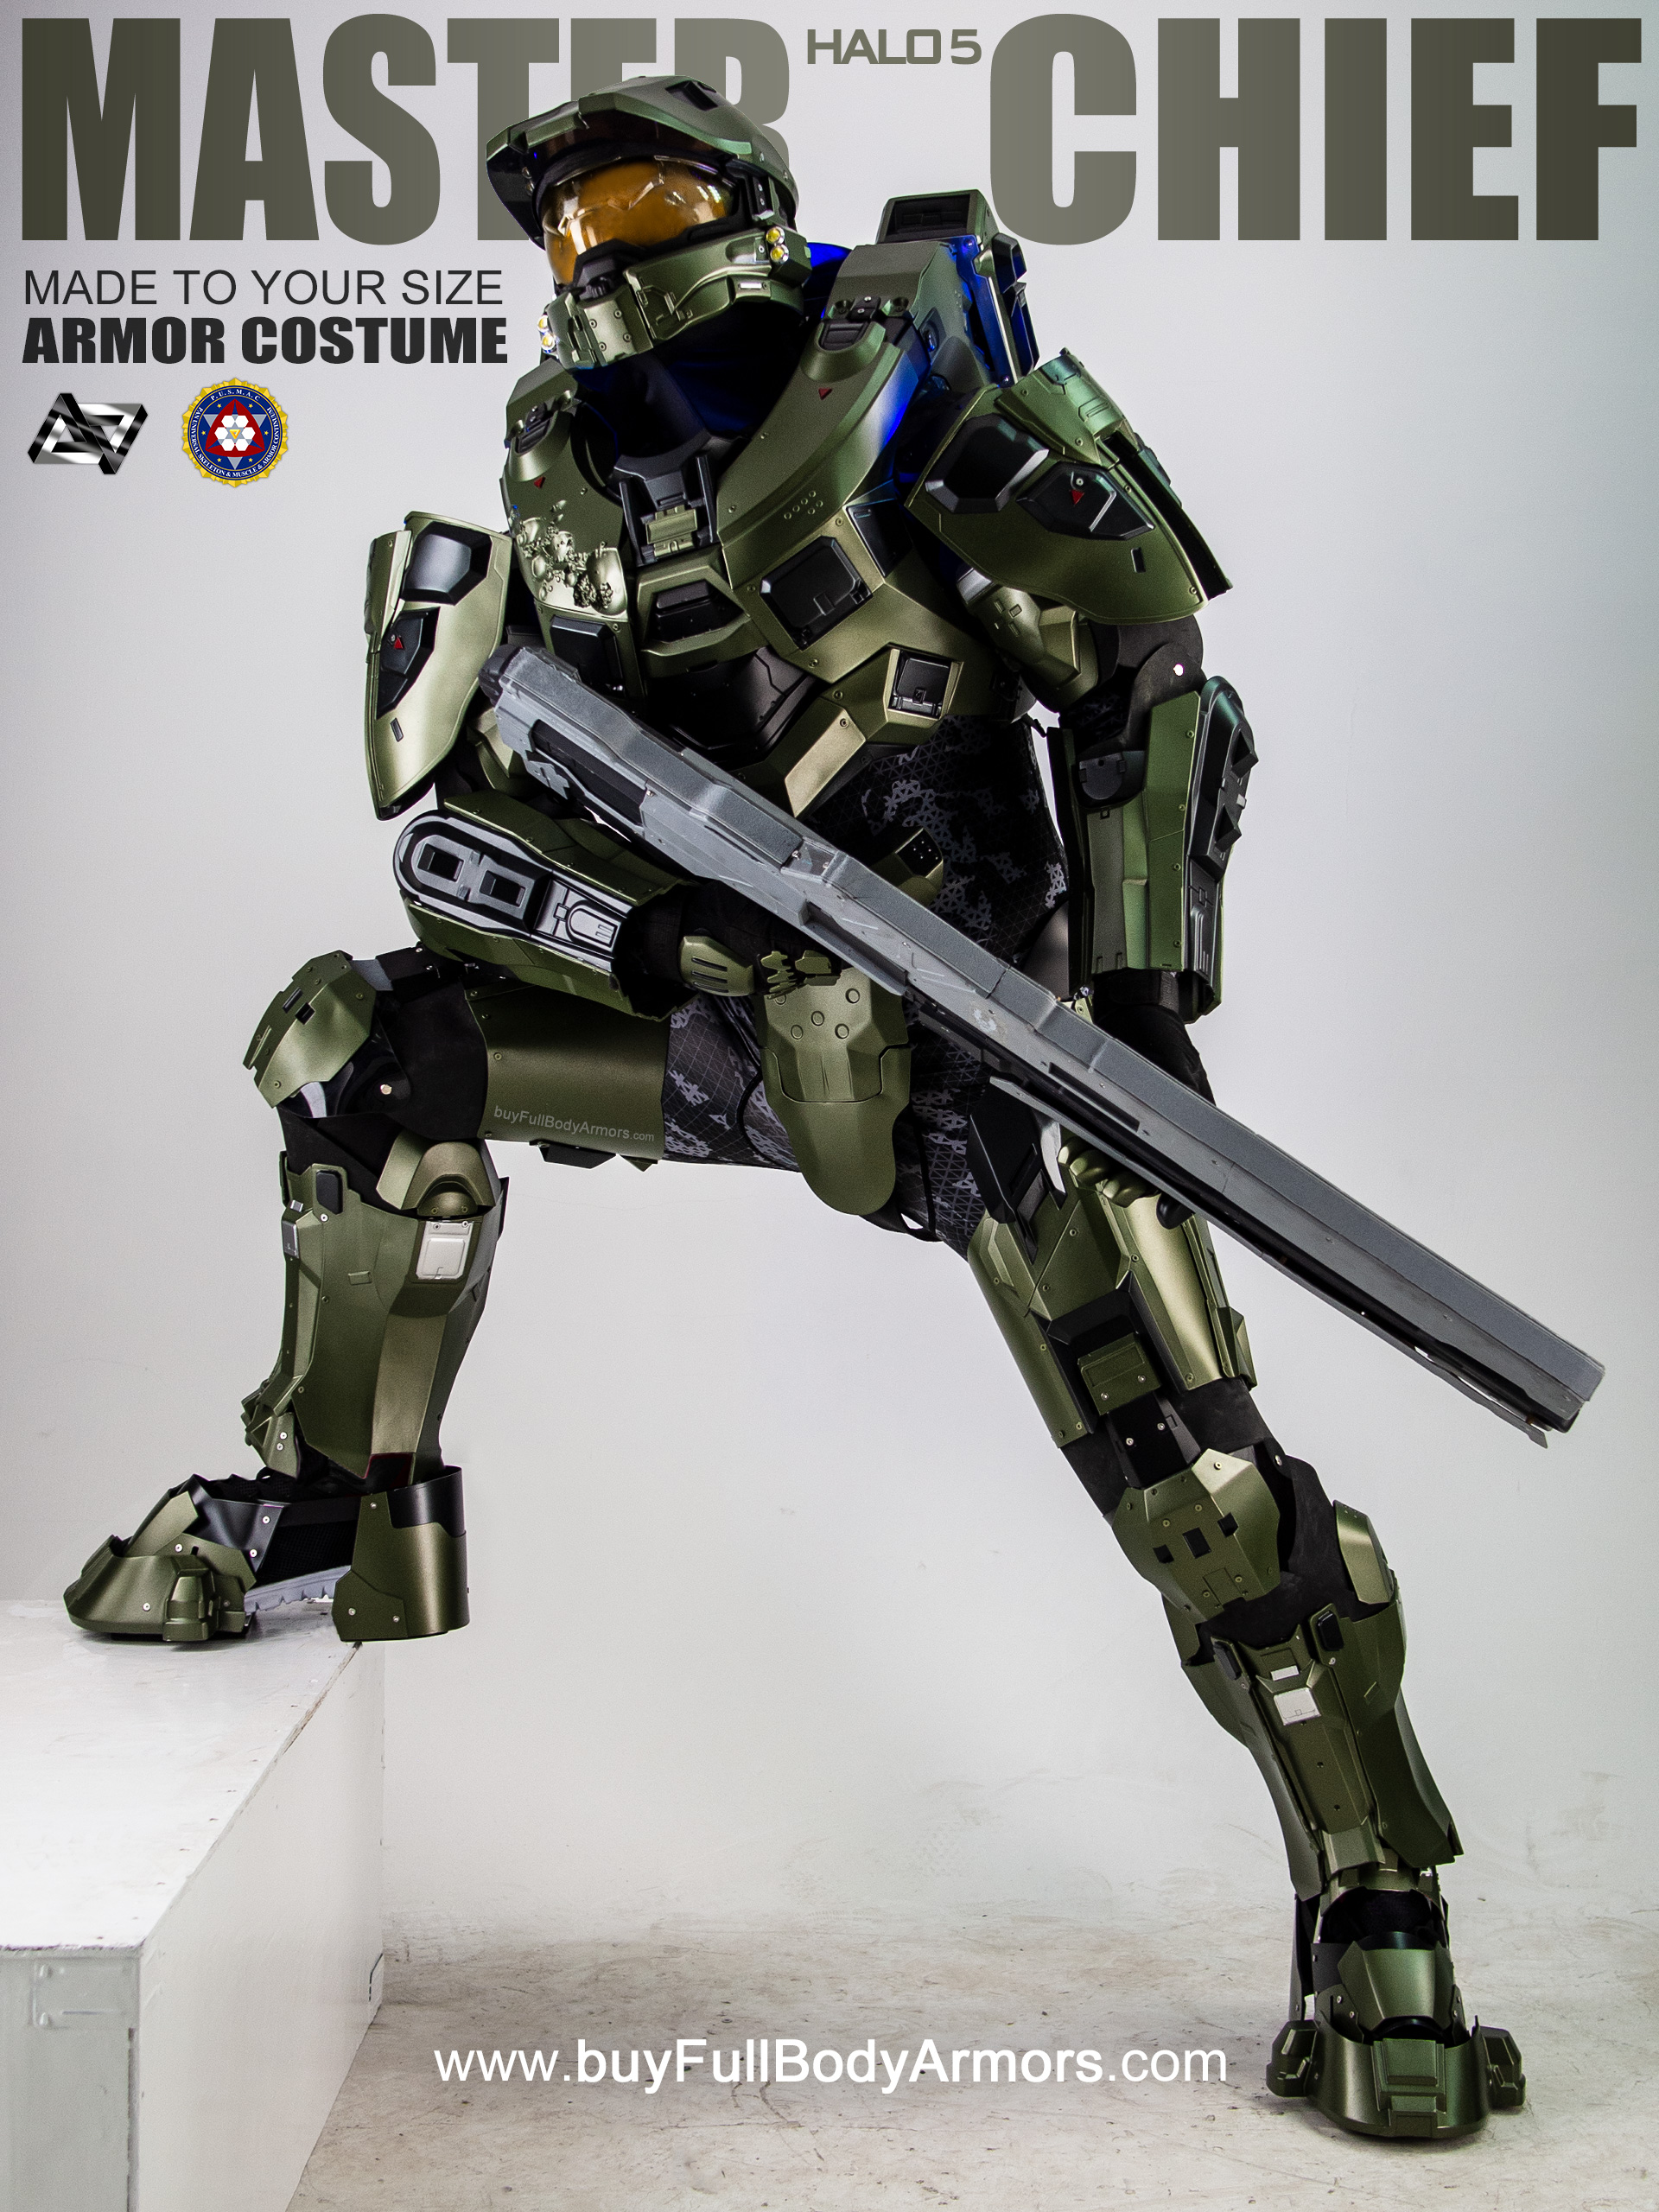 Halo 5 Master Chief Armor Suit Costume side